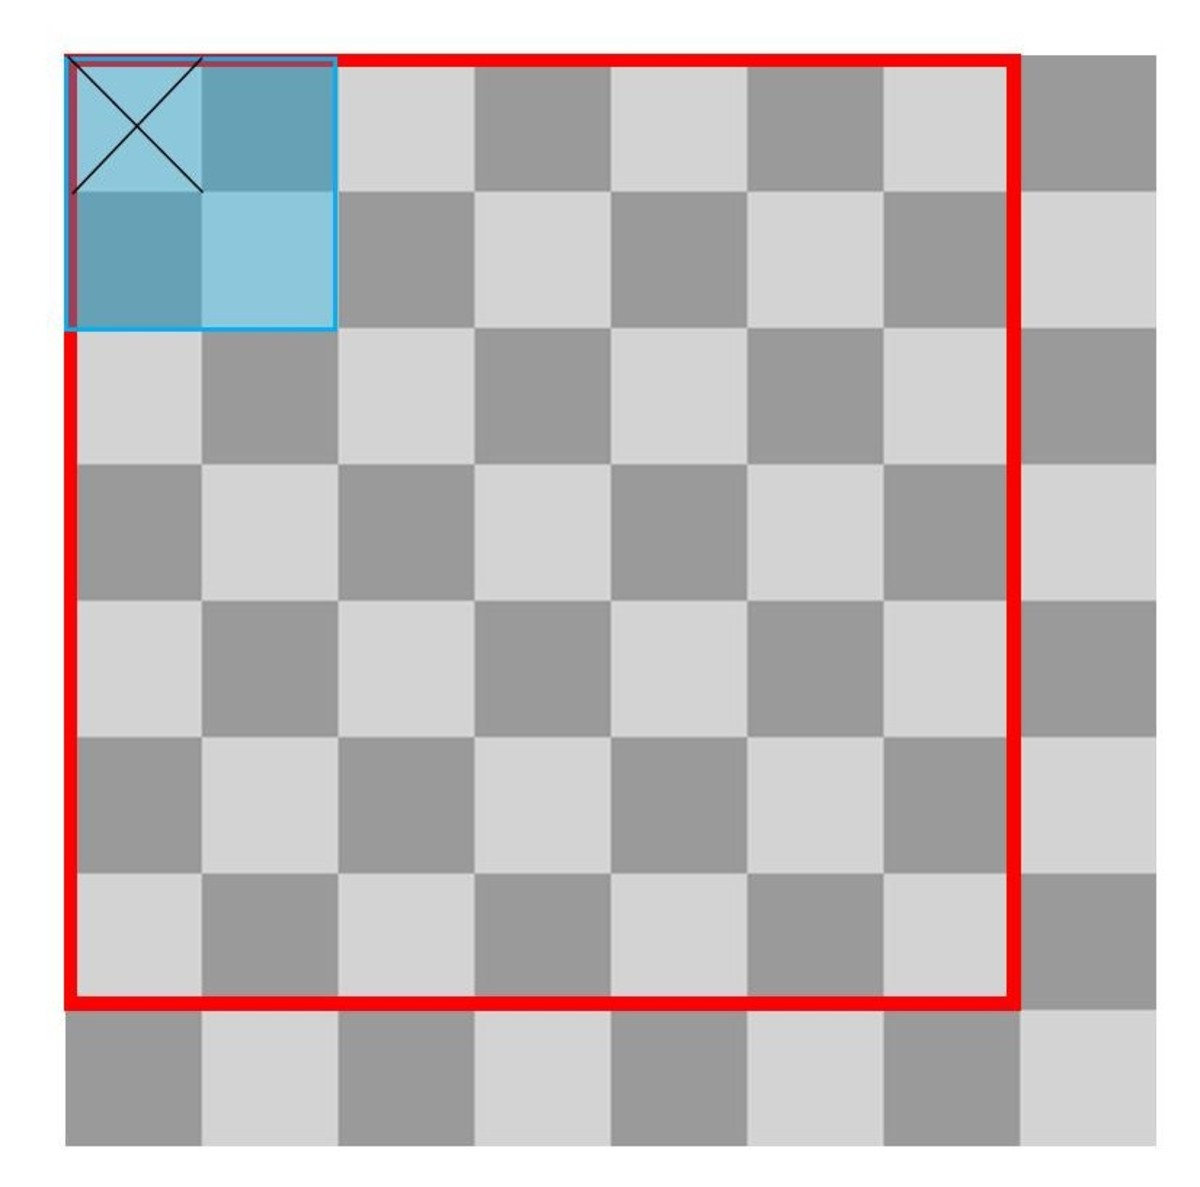 A Chessboard With a 7x7 Square